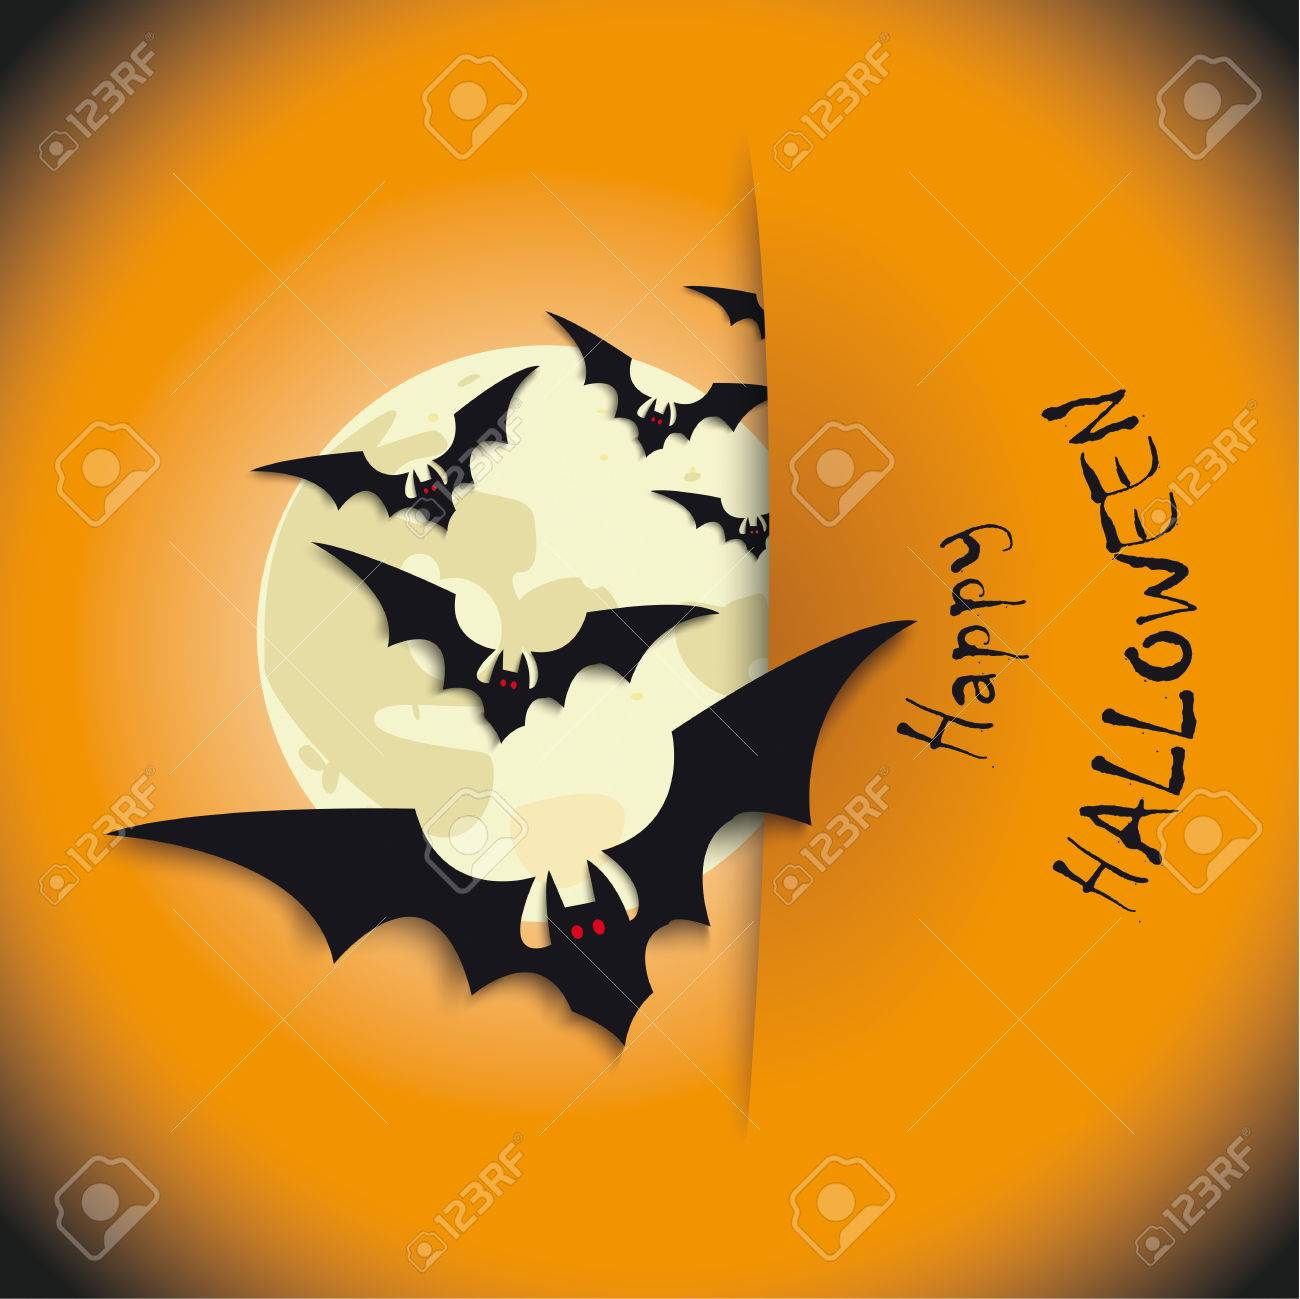 Halloween Flyer Background Design With Bats And Moon. Royalty Free ...